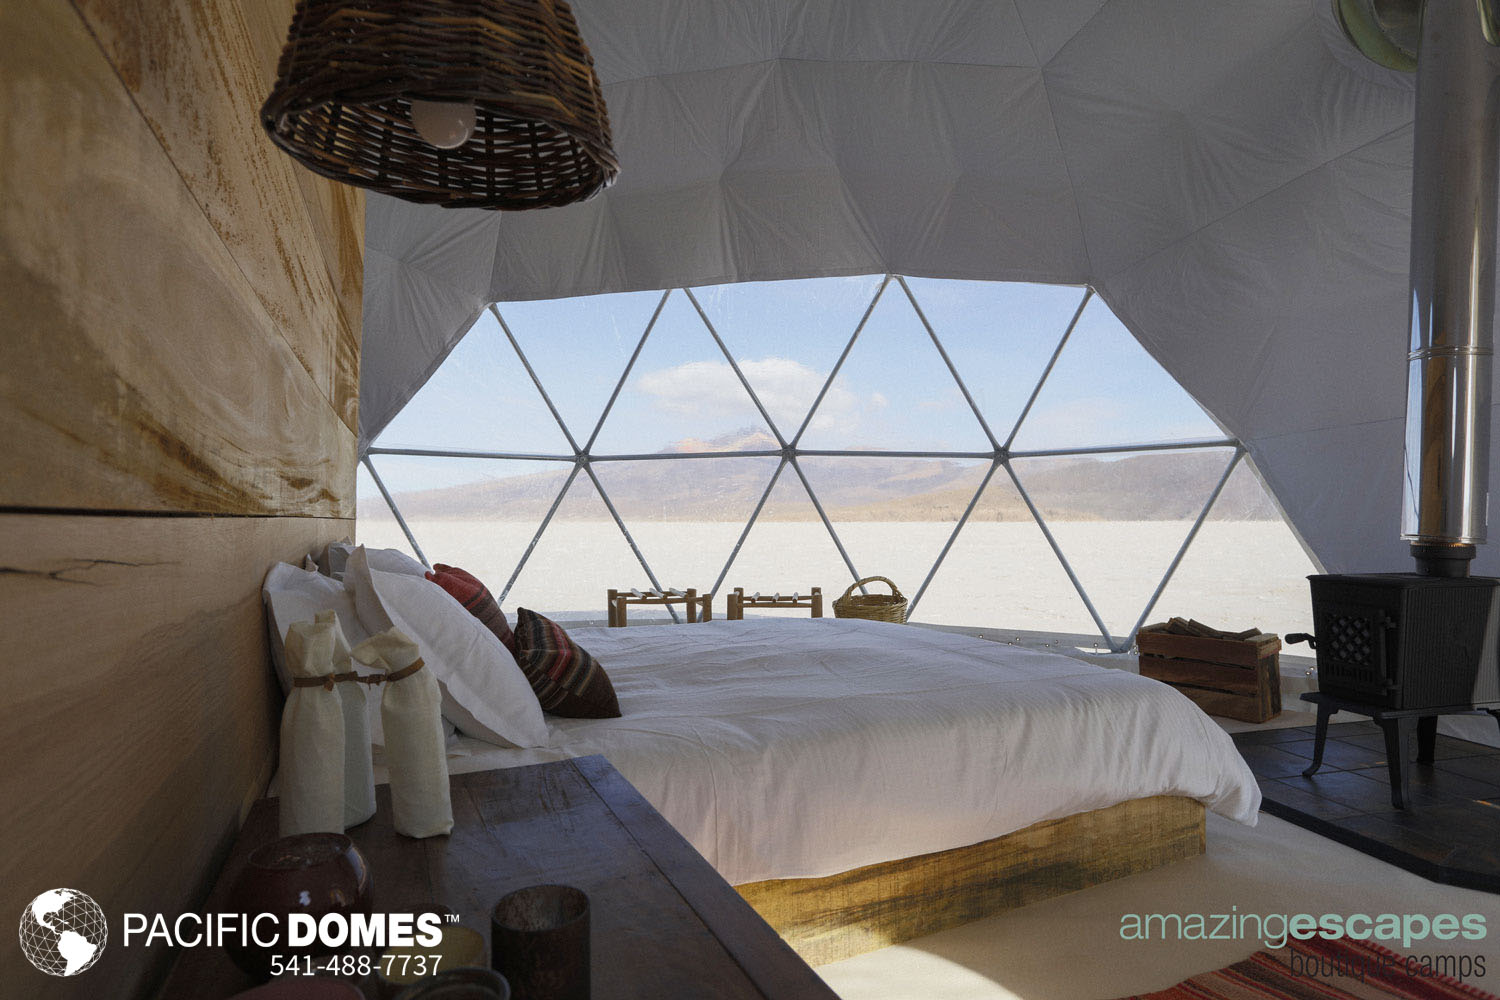 eco-resort domes, eco-friendly luxury resort domes- pacific domes